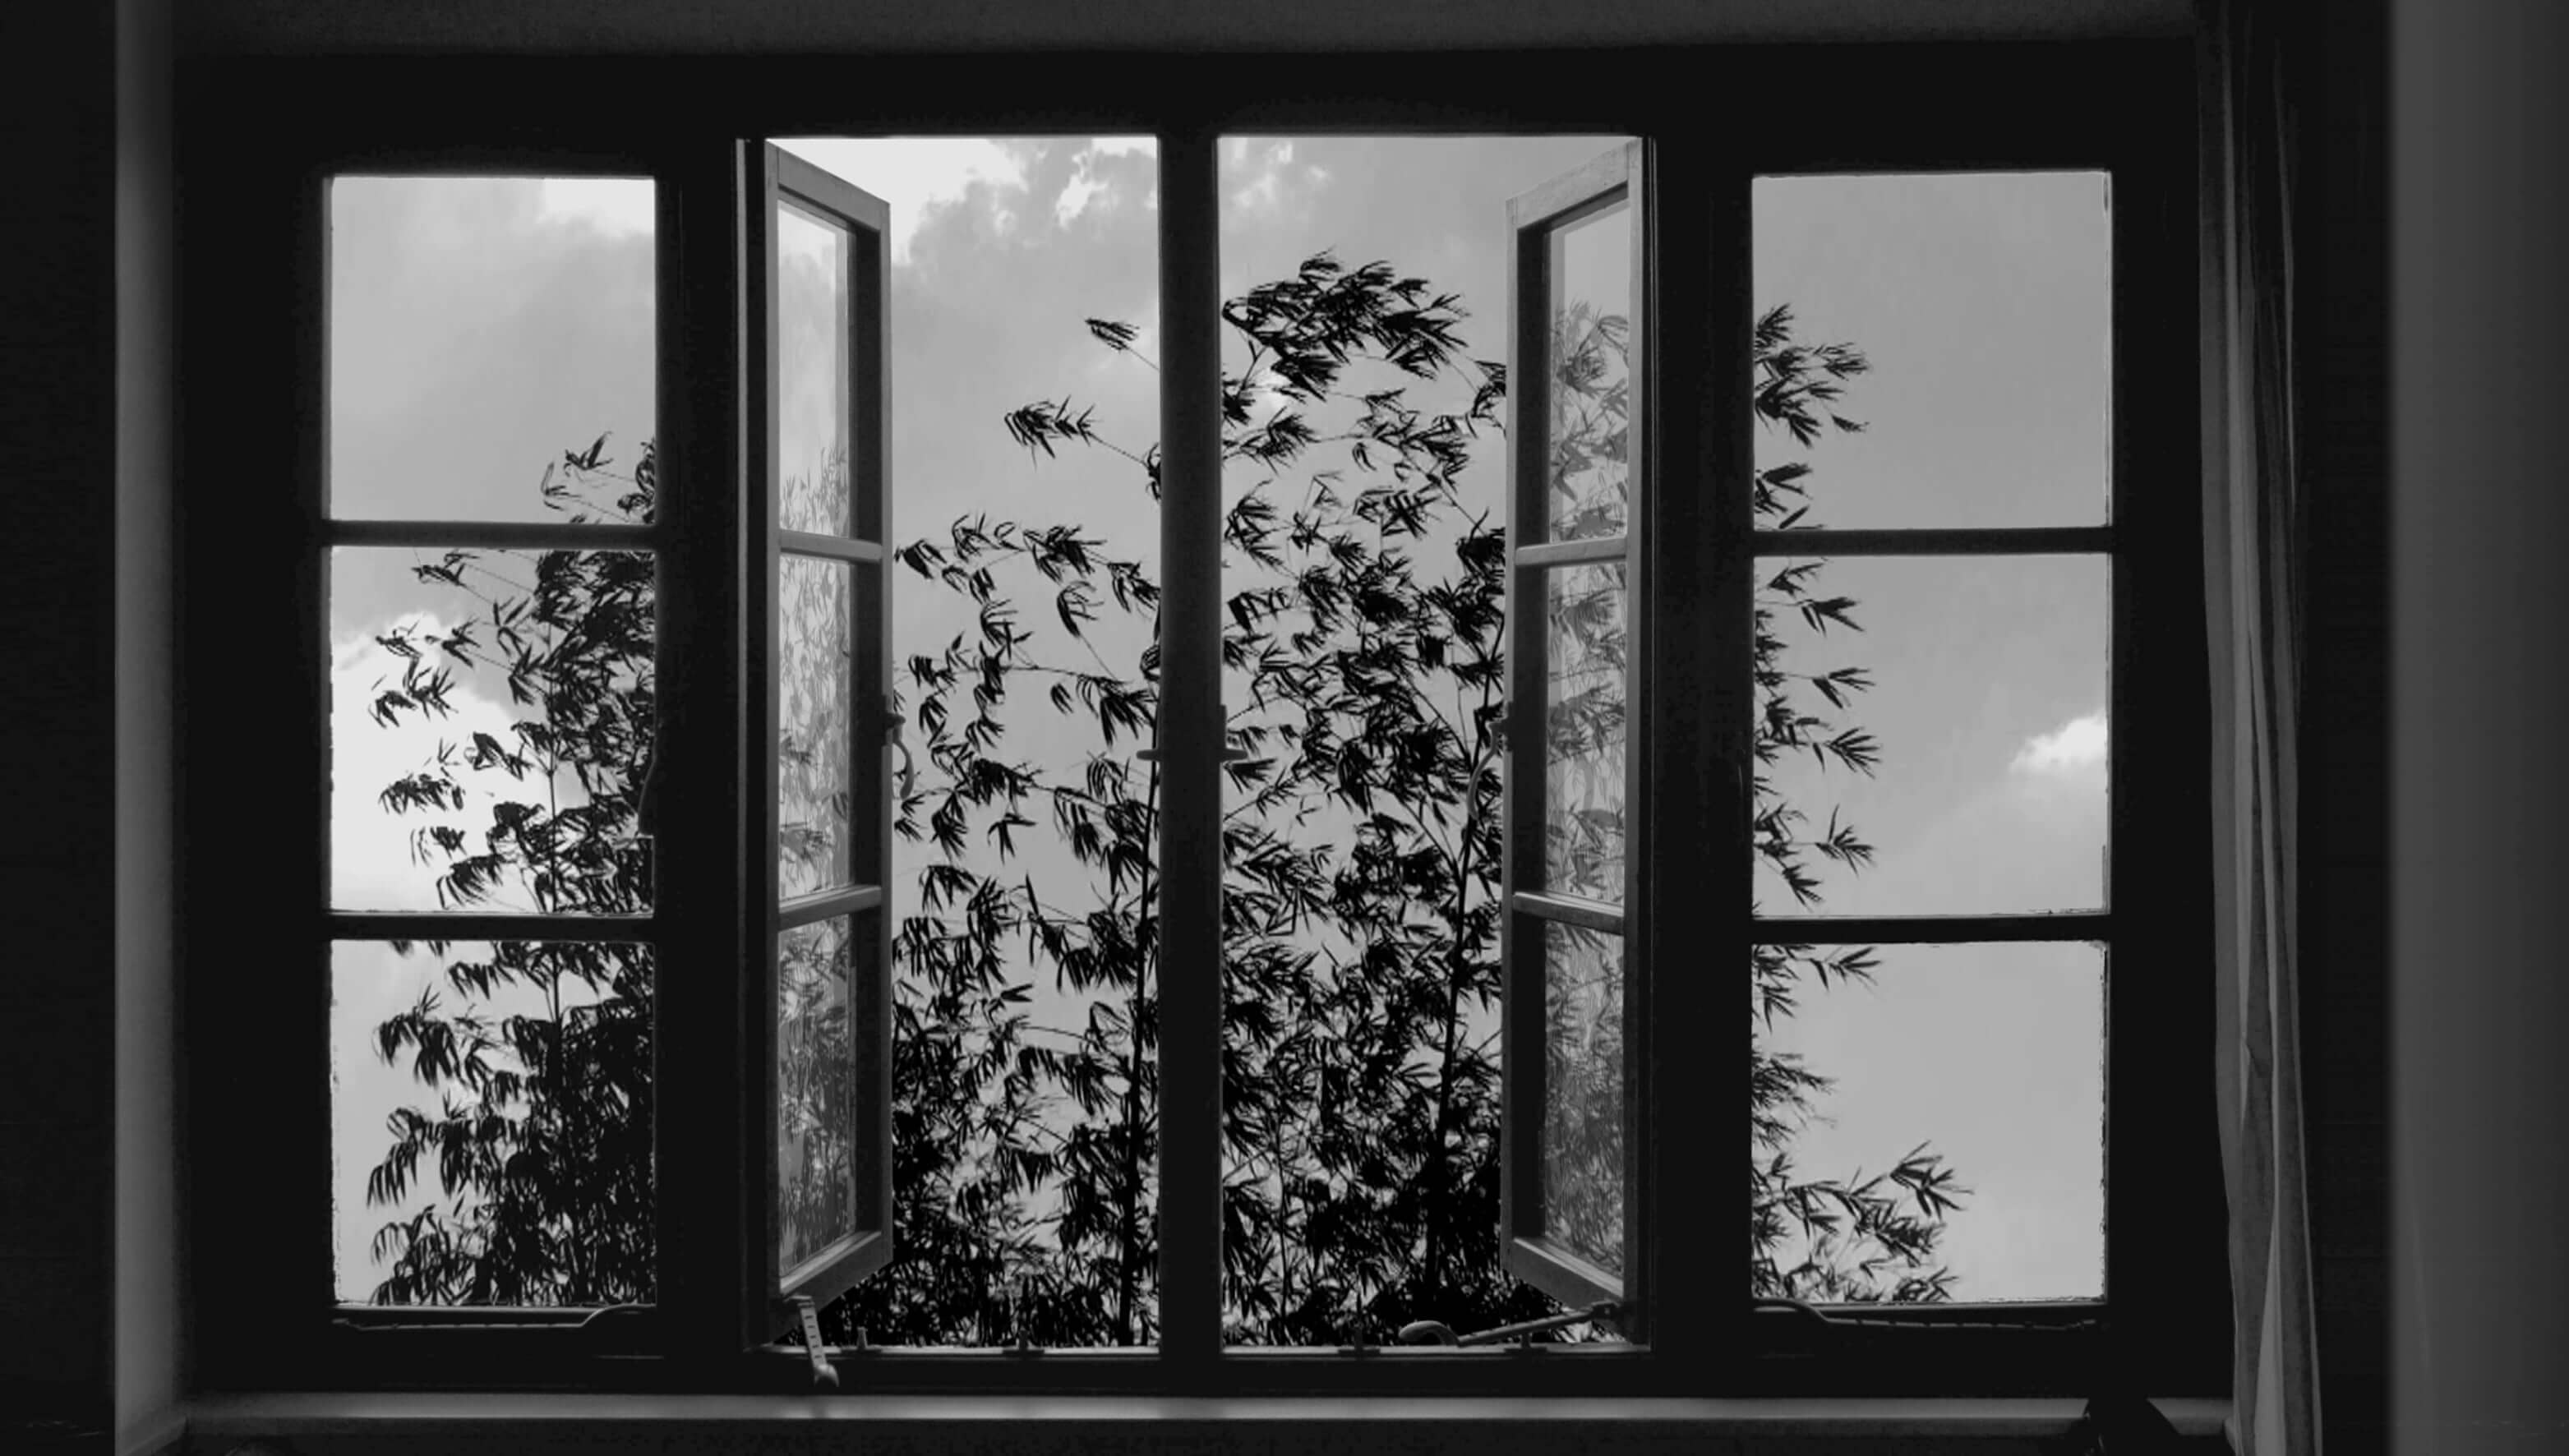 24frames_kiarostami_photo4.jpg